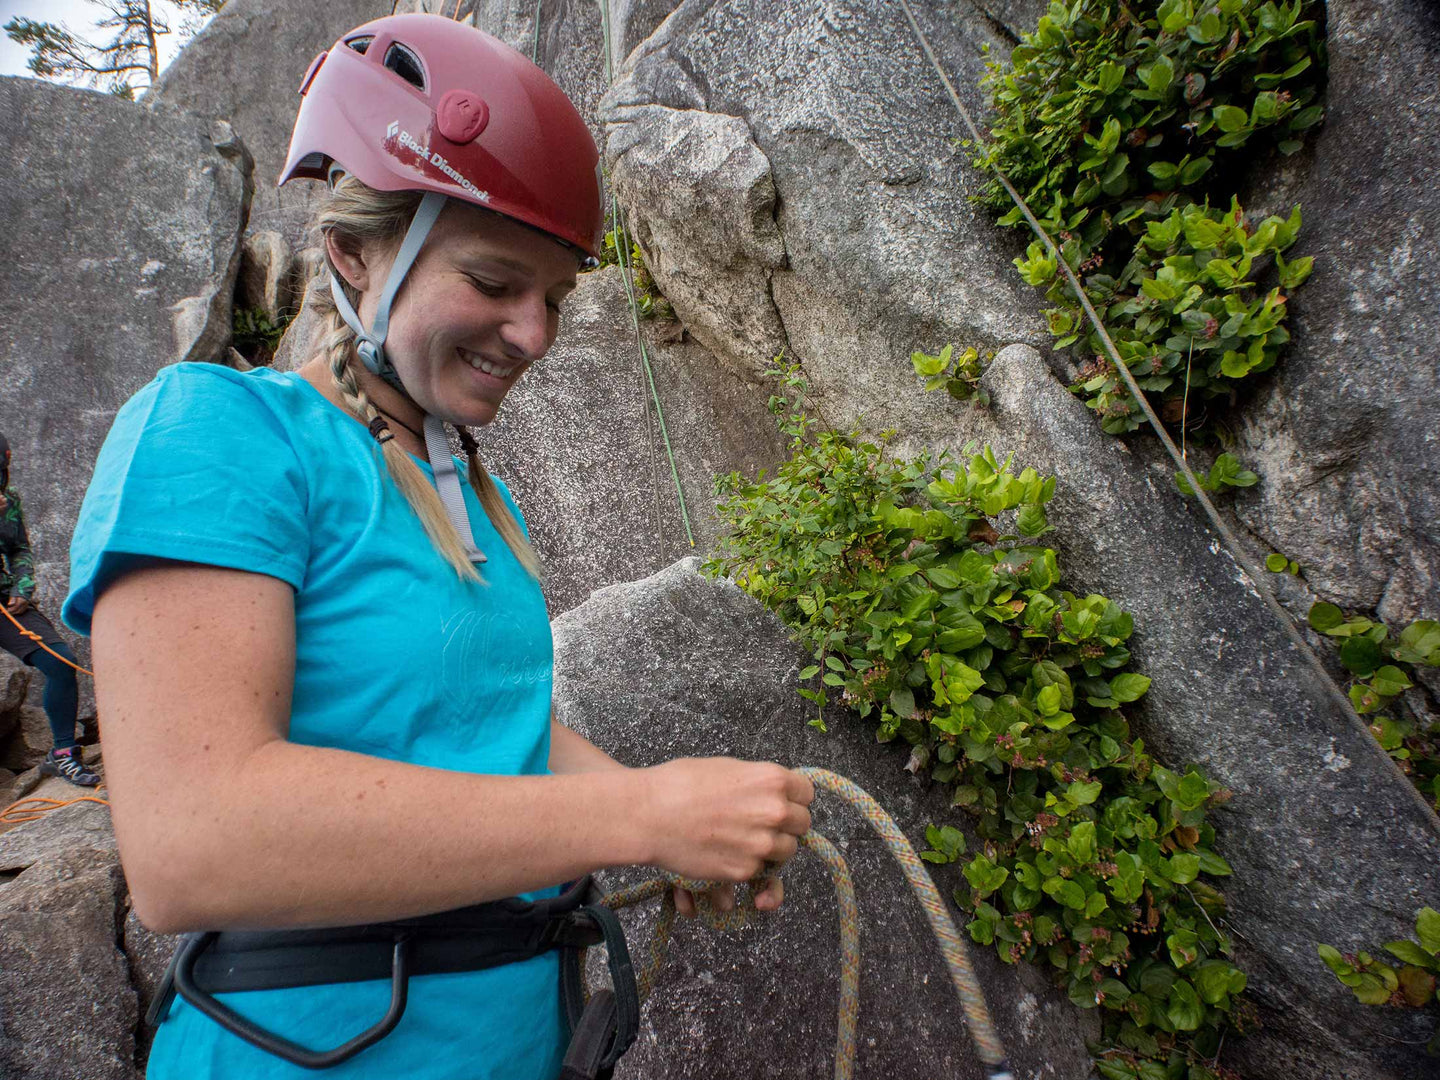 Women learning to Lead Climb in Squamish